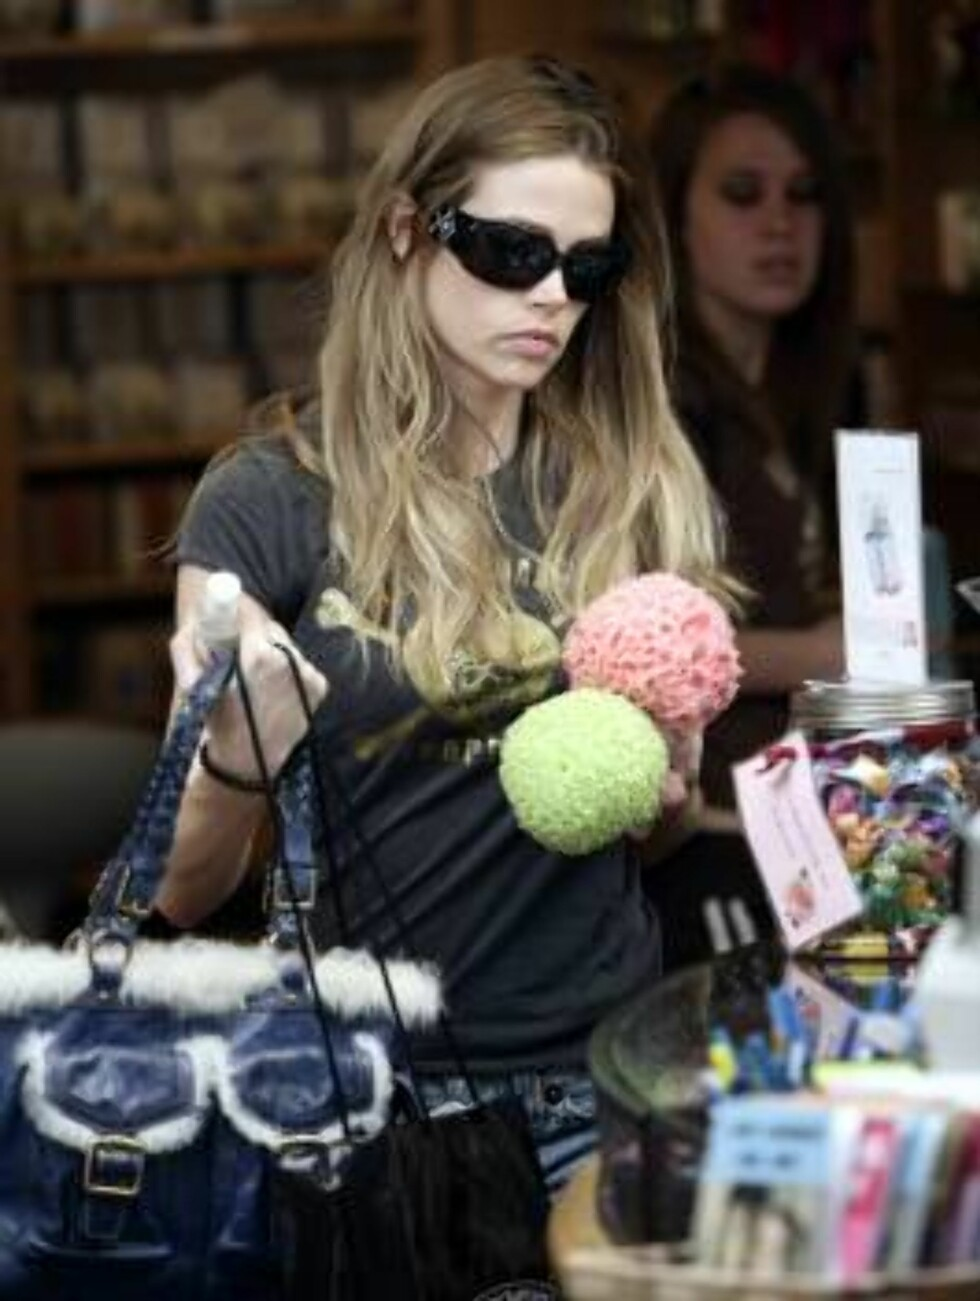 Denise Richard buying two sponges in Malibu aprl 13, 2006 X17agency EXCLUSIVE / ALL OVER PRESS Foto: All Over Press